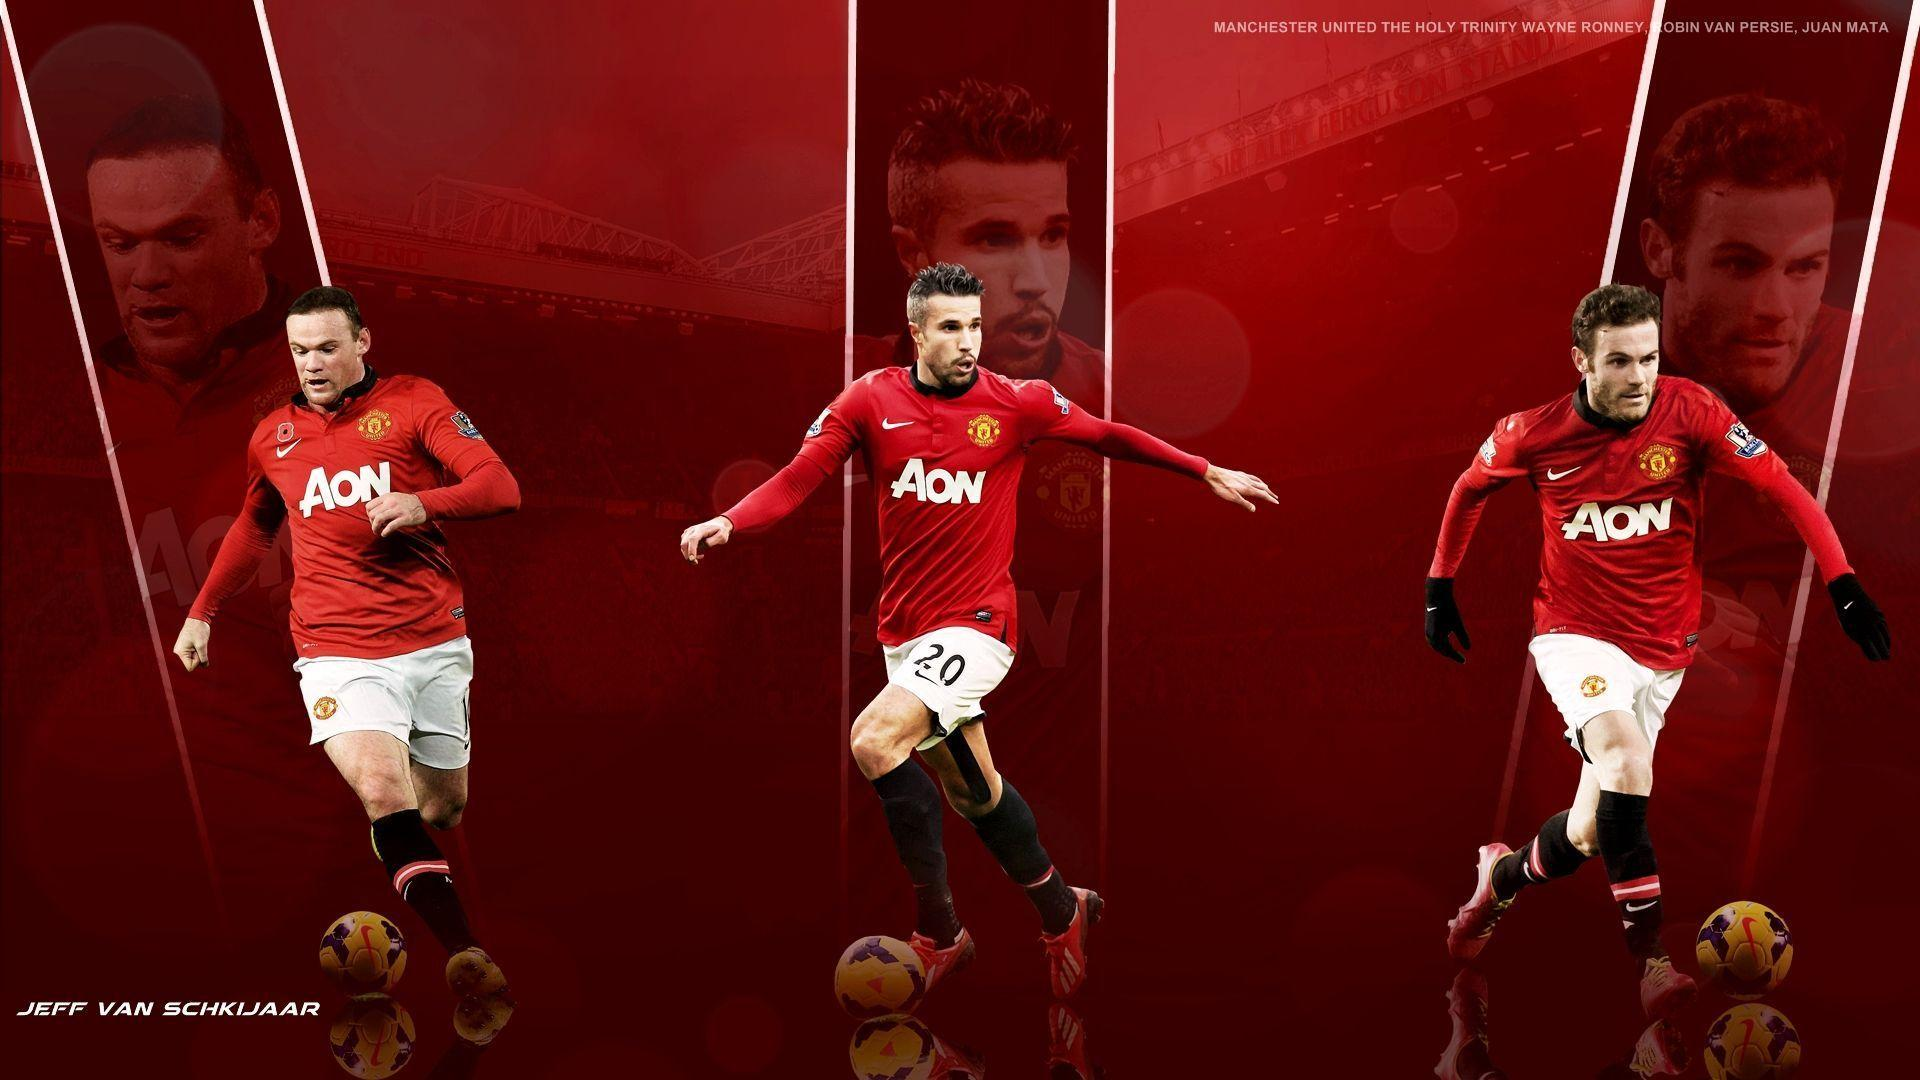 Manchester United Rooney / RVP / Mata Wallpapers HD 2014